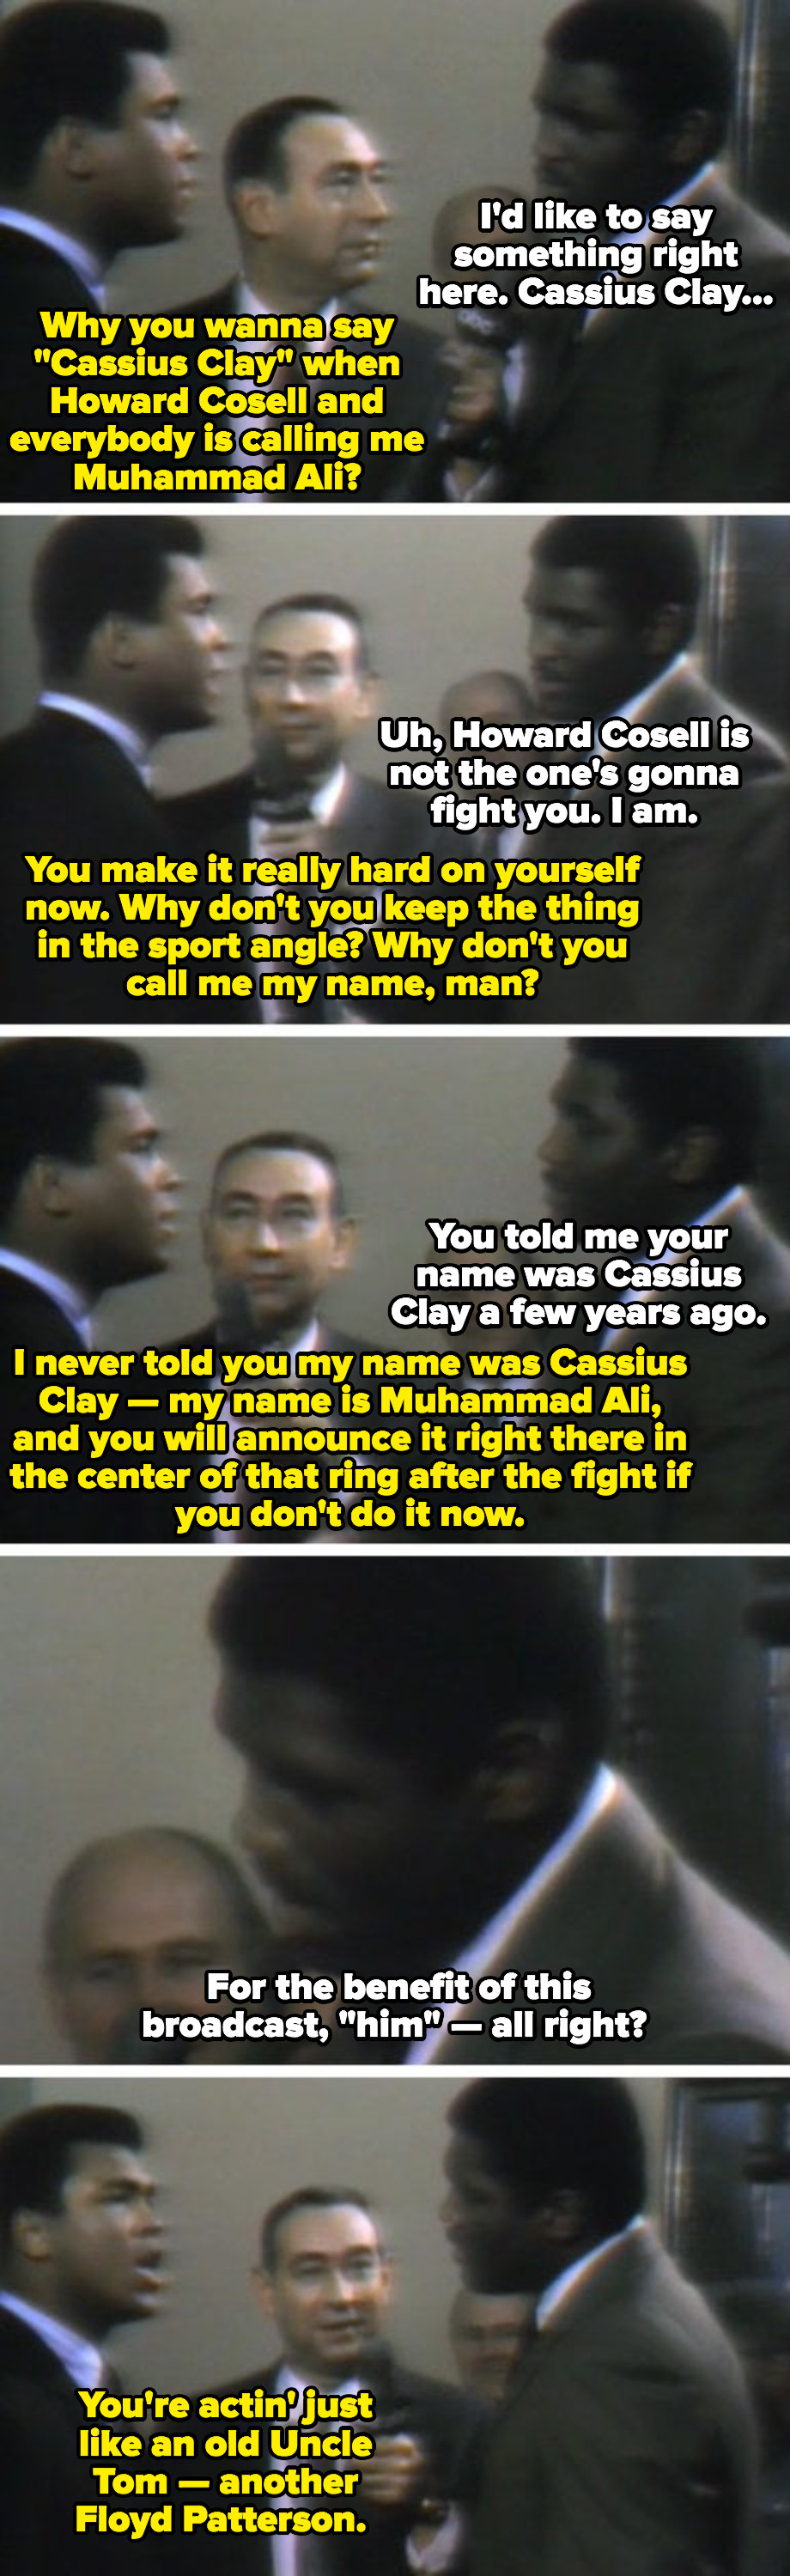 Muhammad Ali and Ernie Terrell having an argument during a TV broadcasting about Ali's name, and why Terrell refused to call him by it